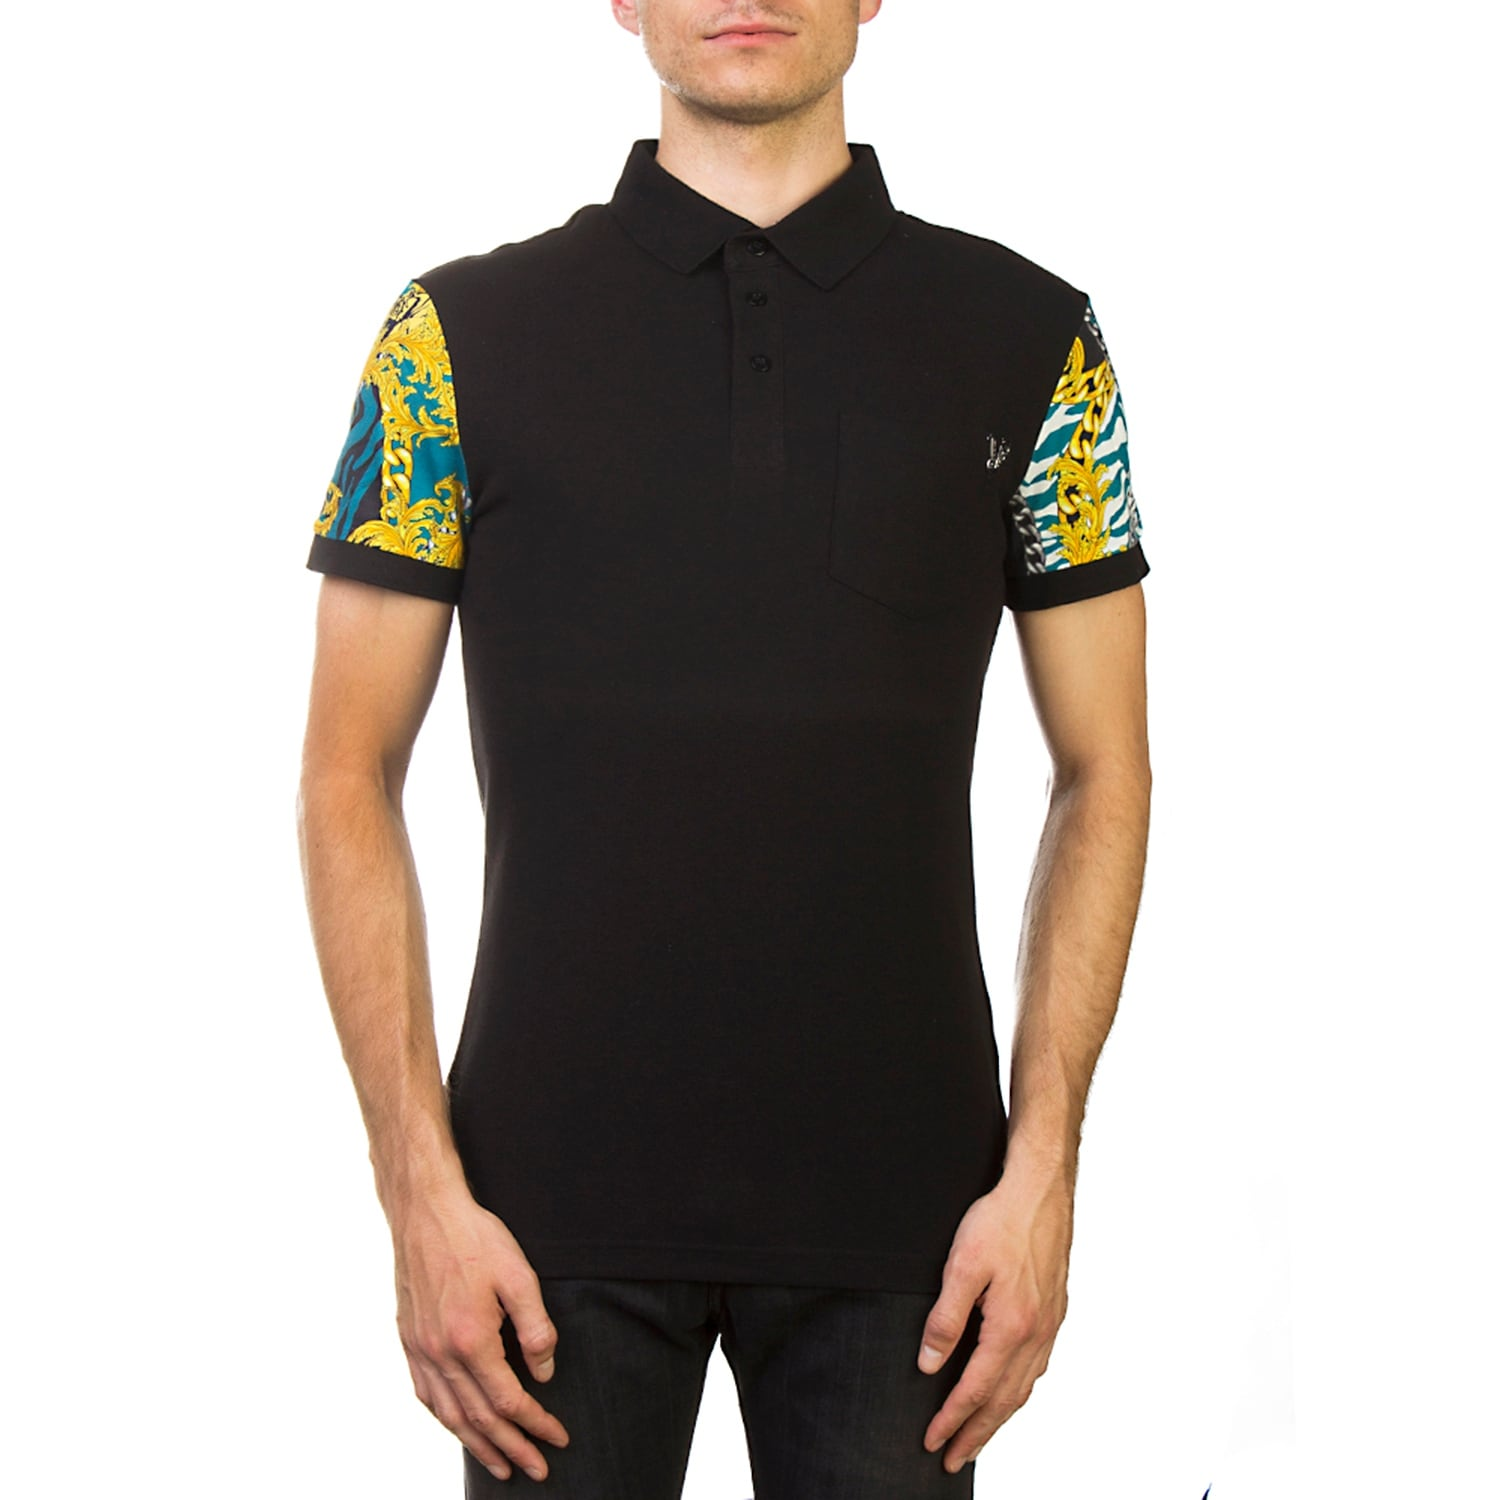 0a23a725 Versace Shirts   Find Great Men's Clothing Deals Shopping at Overstock